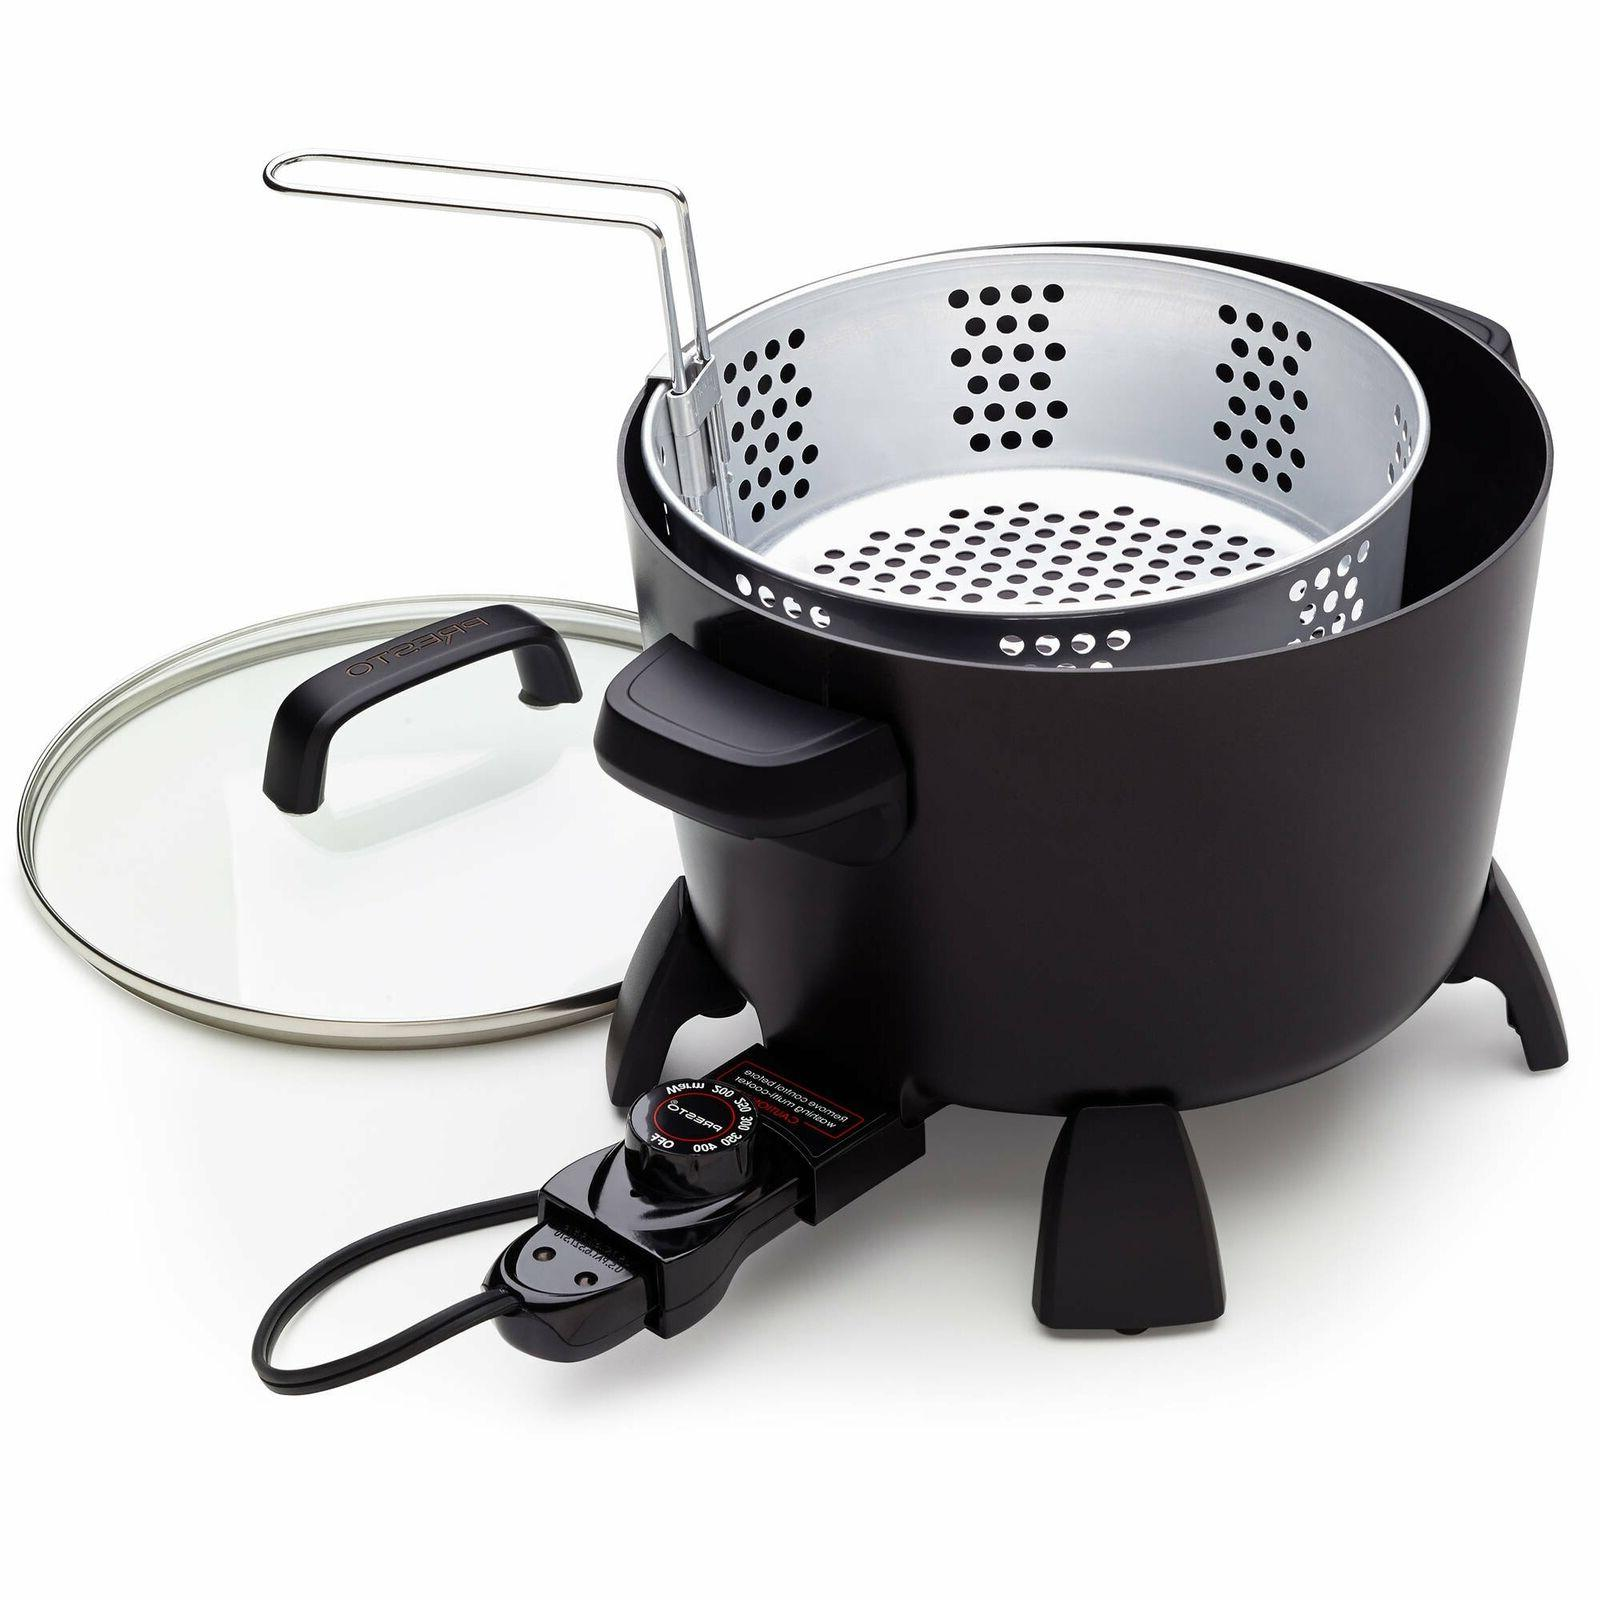 Presto Big Kettle Multi-Cooker & Steamer Extra-Large With Te